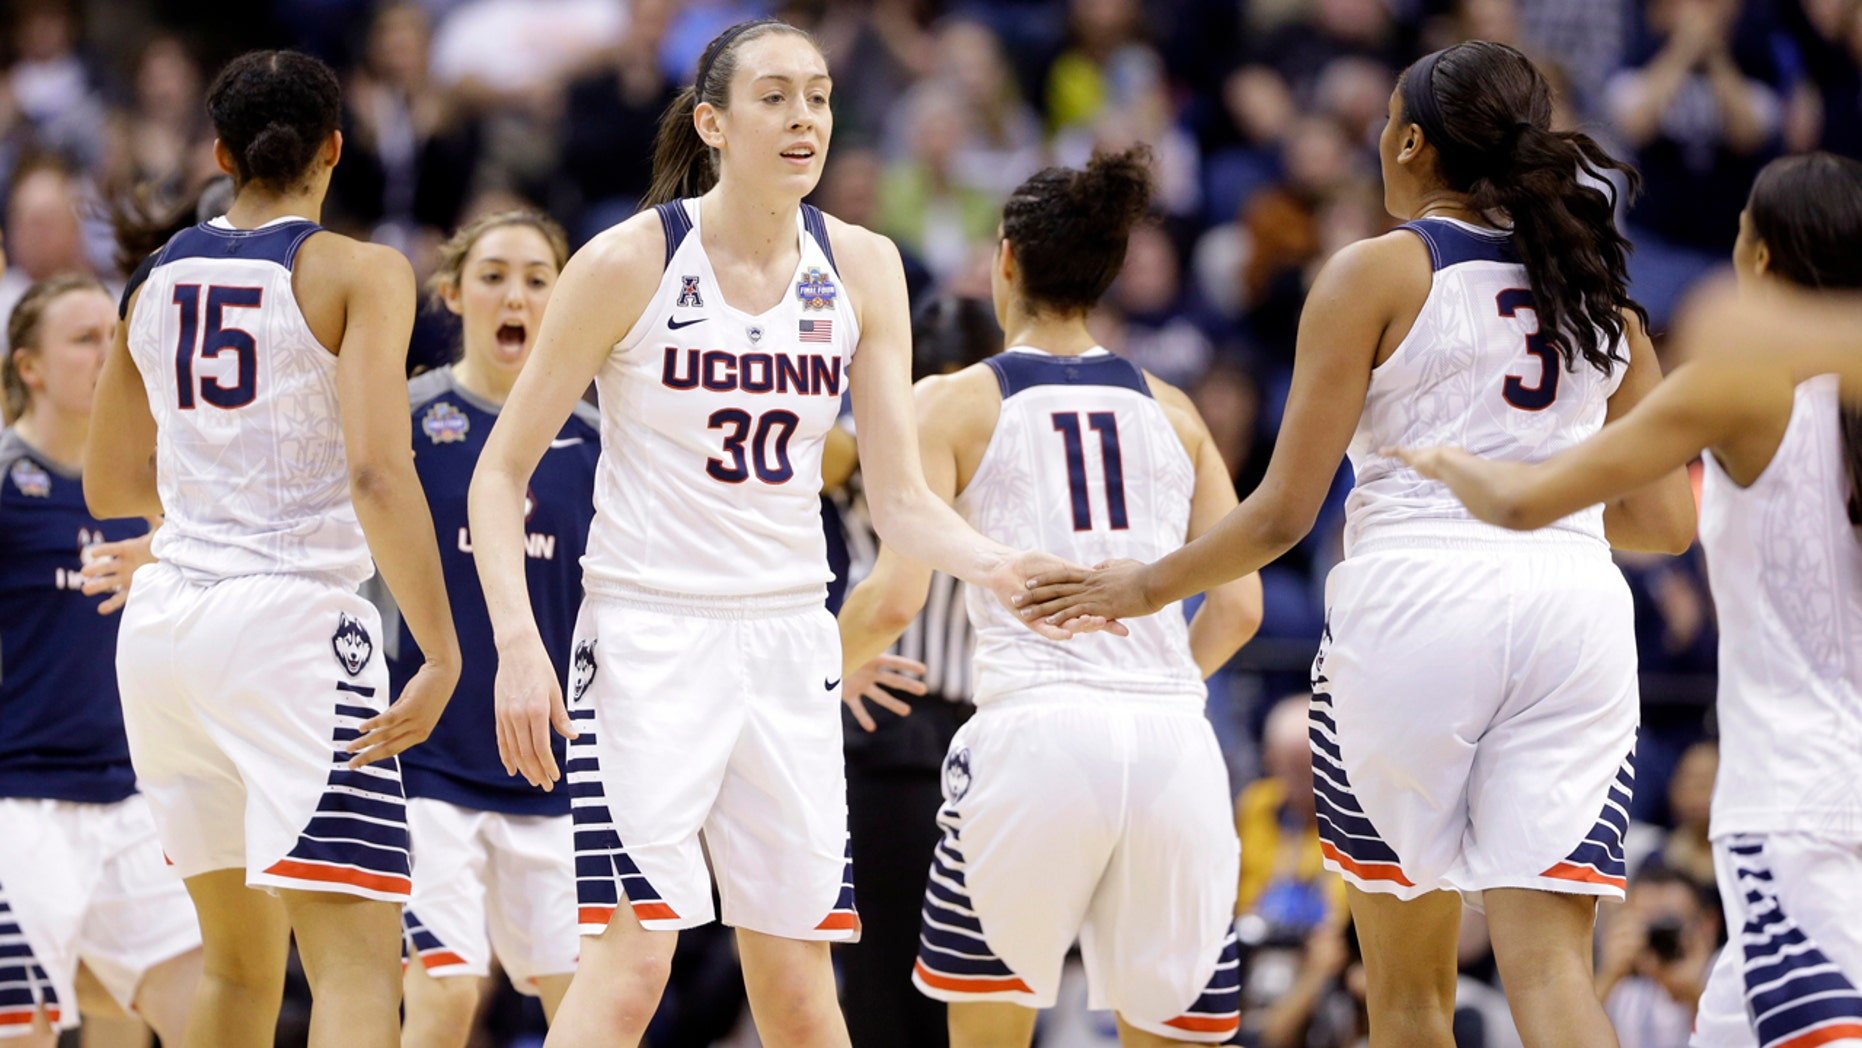 April 5, 2016: Connecticut's Breanna Stewart (30) greets teammates during a timeout during the first half of the NCAA women's basketball championship game against Syracuse in Indianapolis.